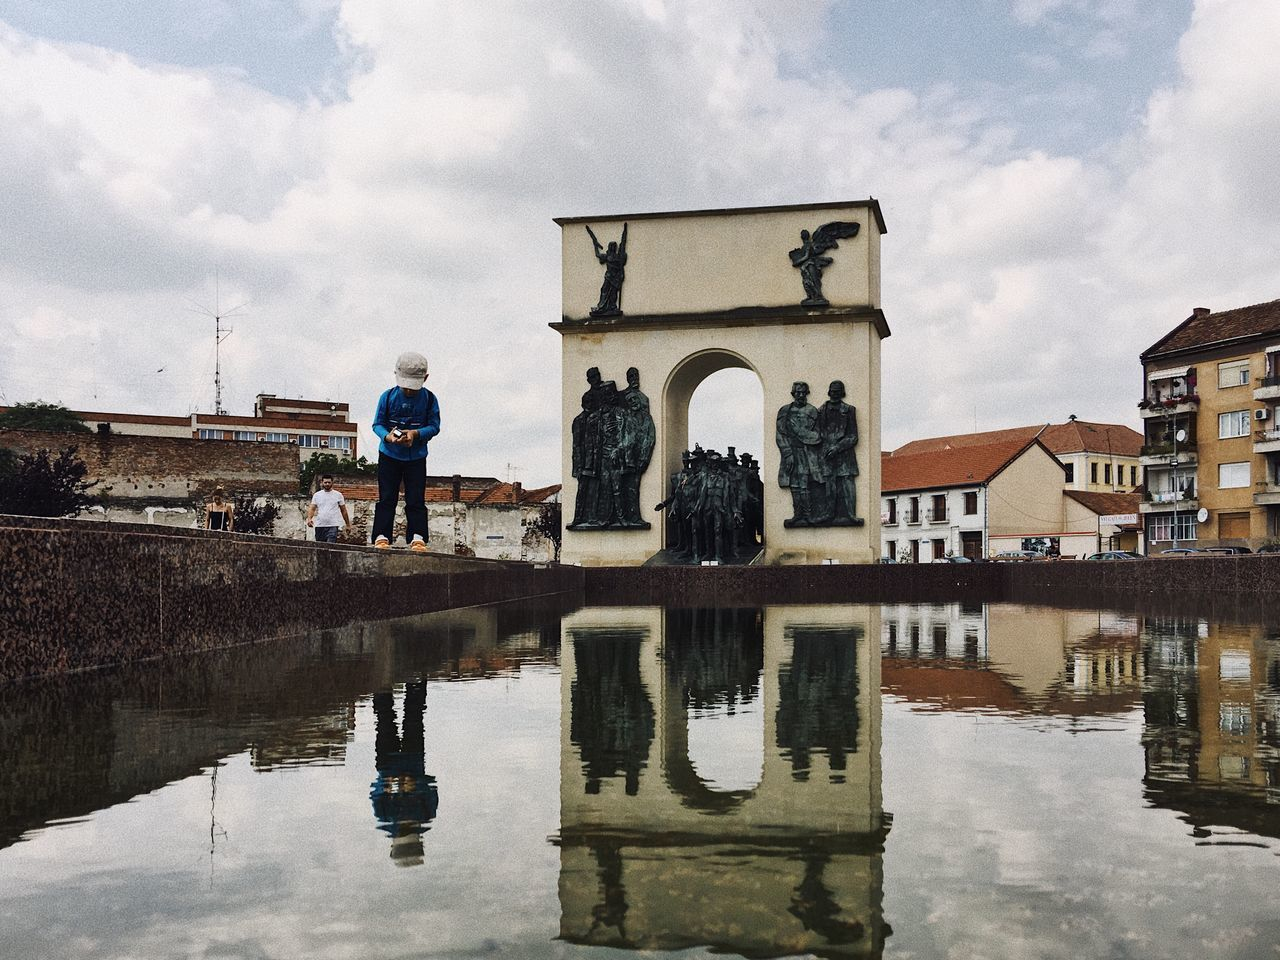 Childhood reflection... Water Architecture Sky Reflection Lifestyles Puddle Sculpture Nature Outdoors People Child Childhood Cloud - Sky Made In Romania VSCO Details Of My Life My Favorite Photo Real People Building Exterior Cityscape City Park Tourist Attraction  City Life Neighborhood Map